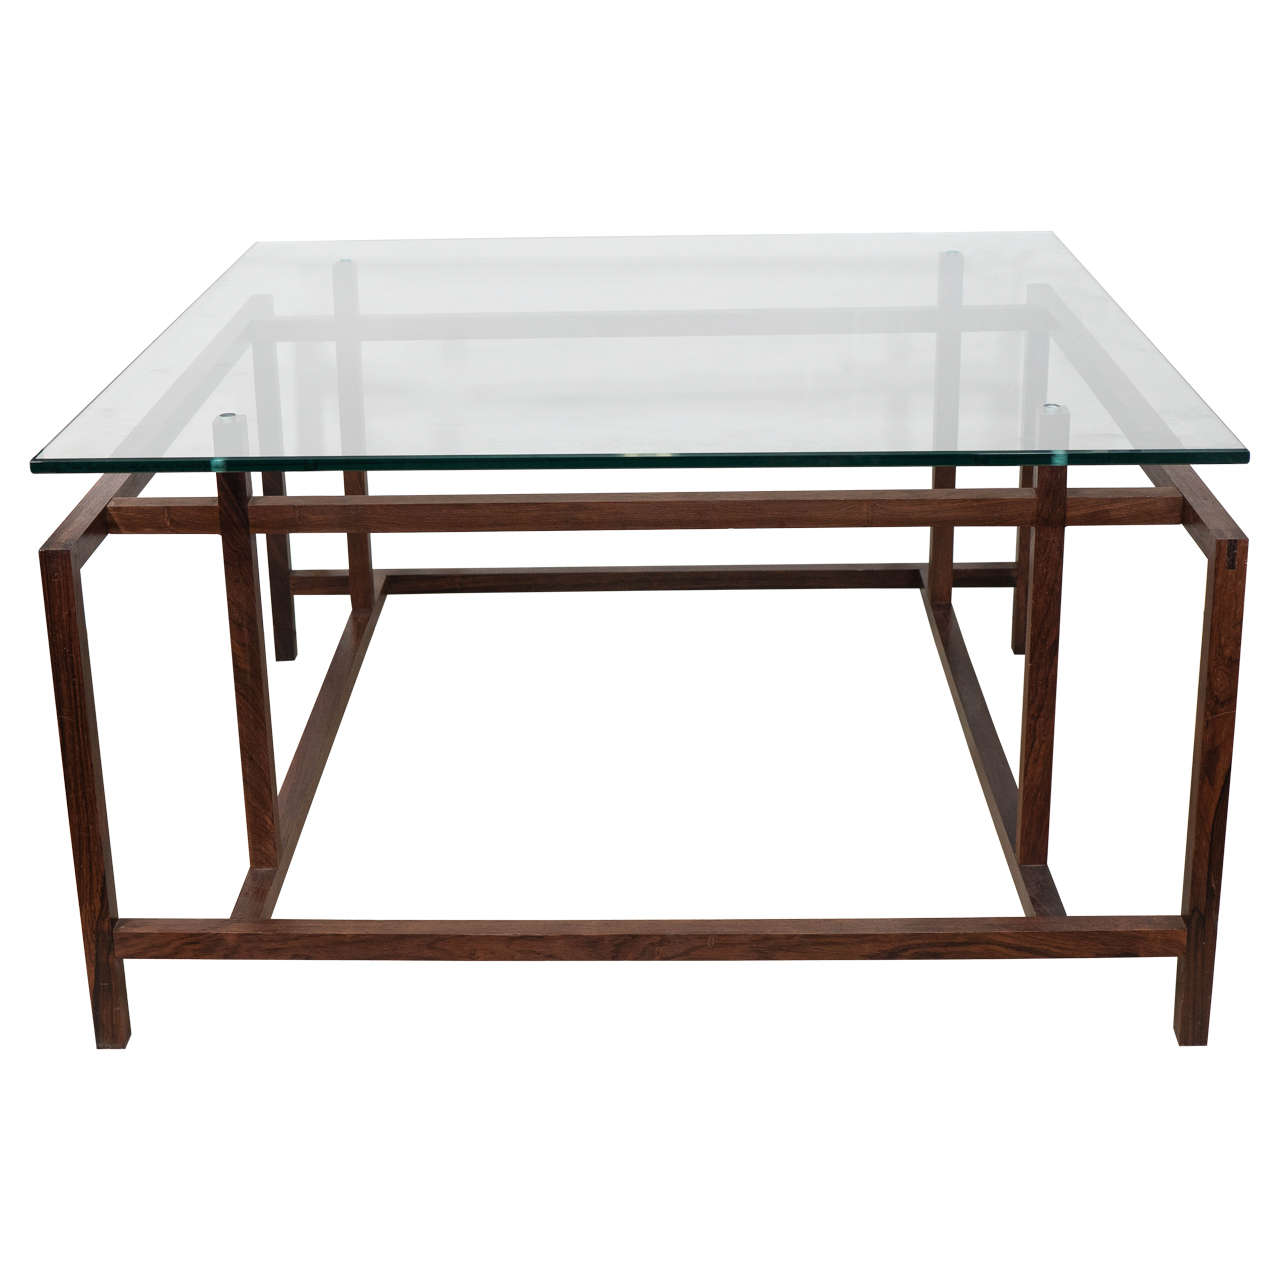 Henning Norgaard Modern Rosewood Coffee Table With Glass Top For Komfort At 1stdibs